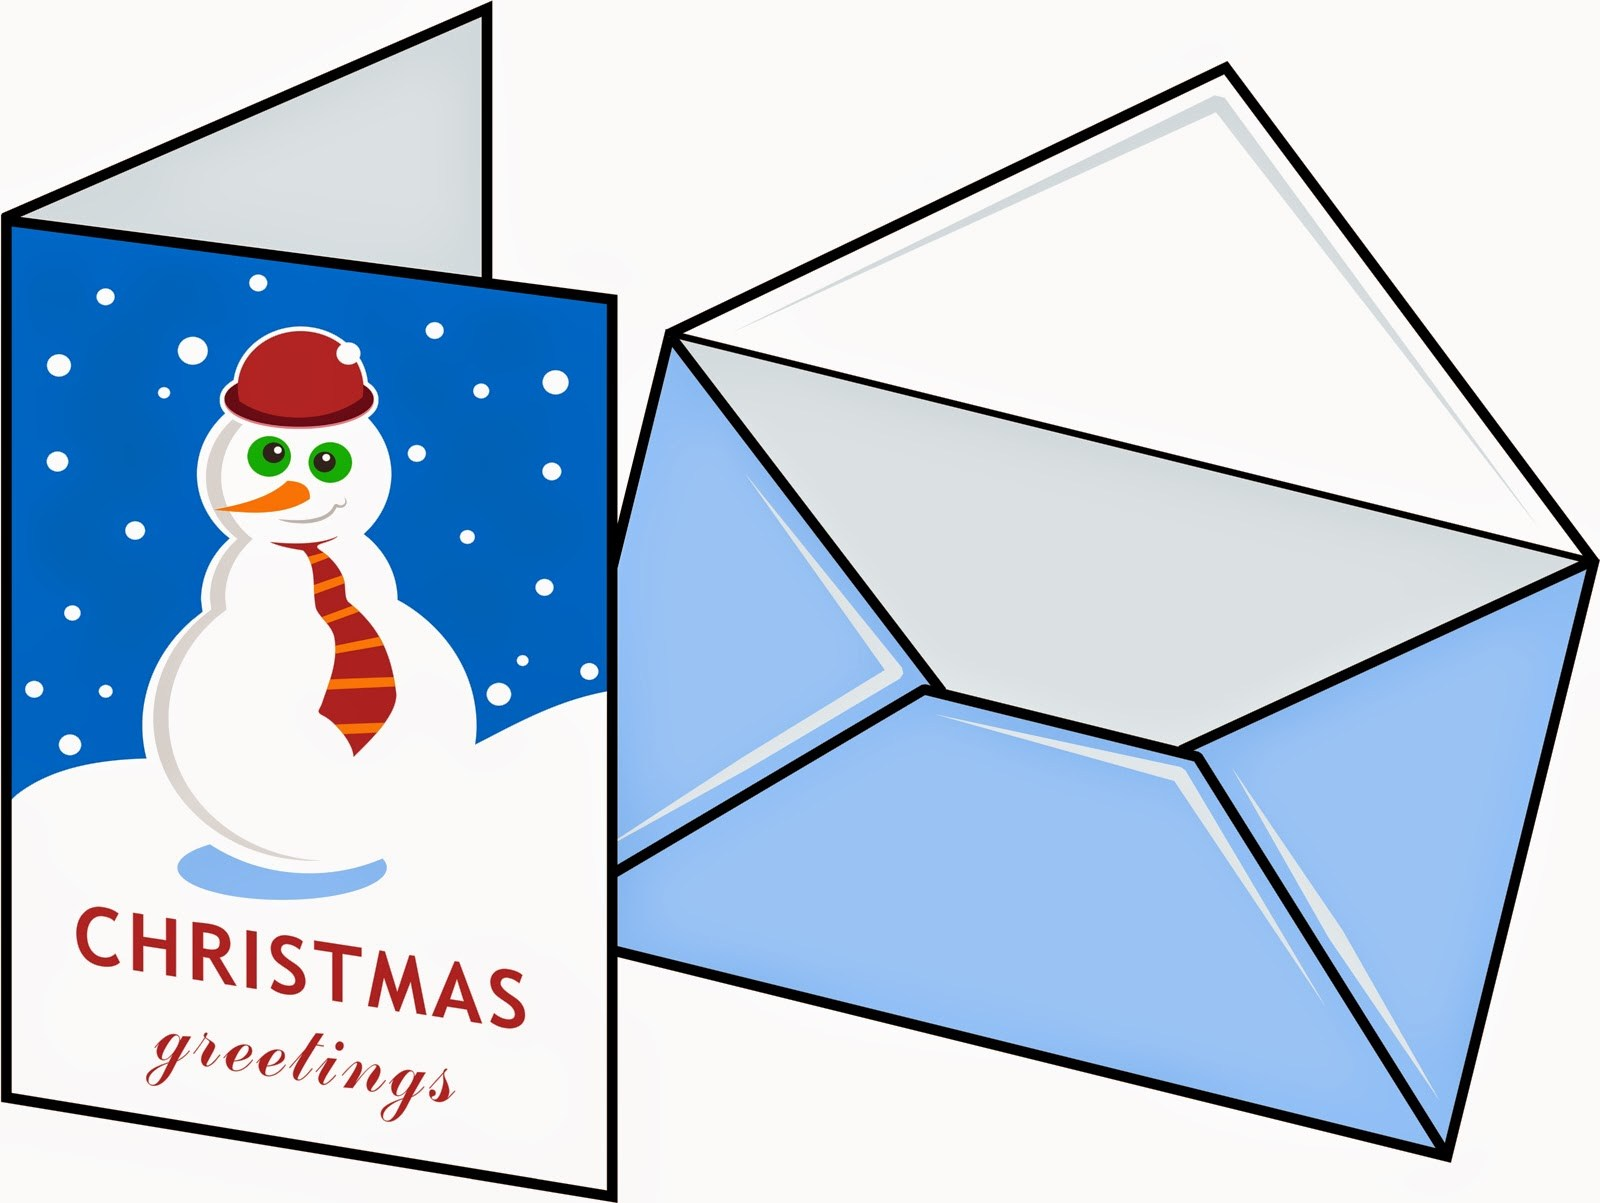 Holiday card clipart 2 » Clipart Portal.